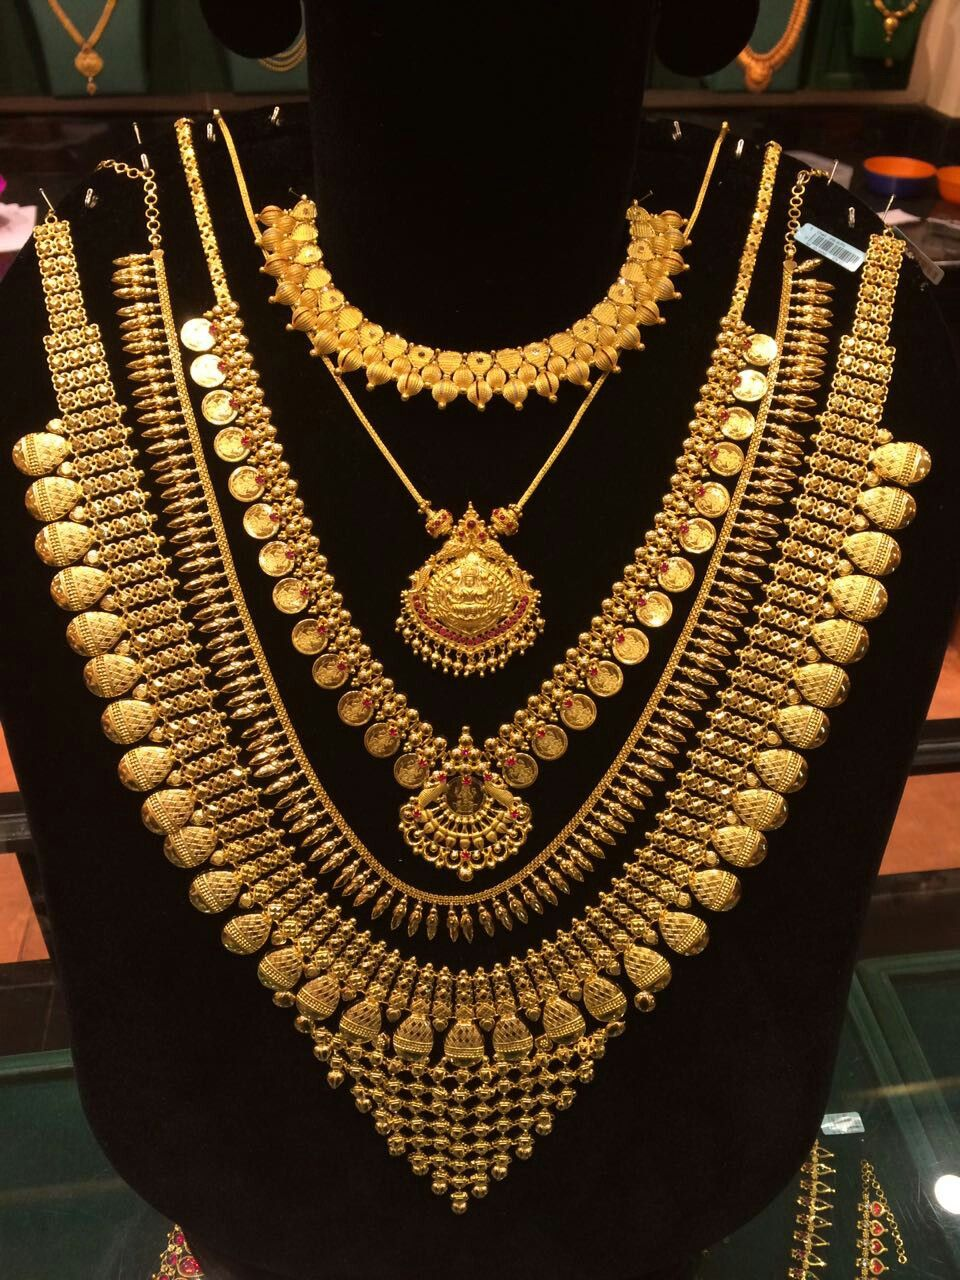 Pin By Sumitra Karmokar On Jewellery Bridal Gold Jewellery Designs Bridal Jewelry Vintage Gold Jewellery Design Necklaces